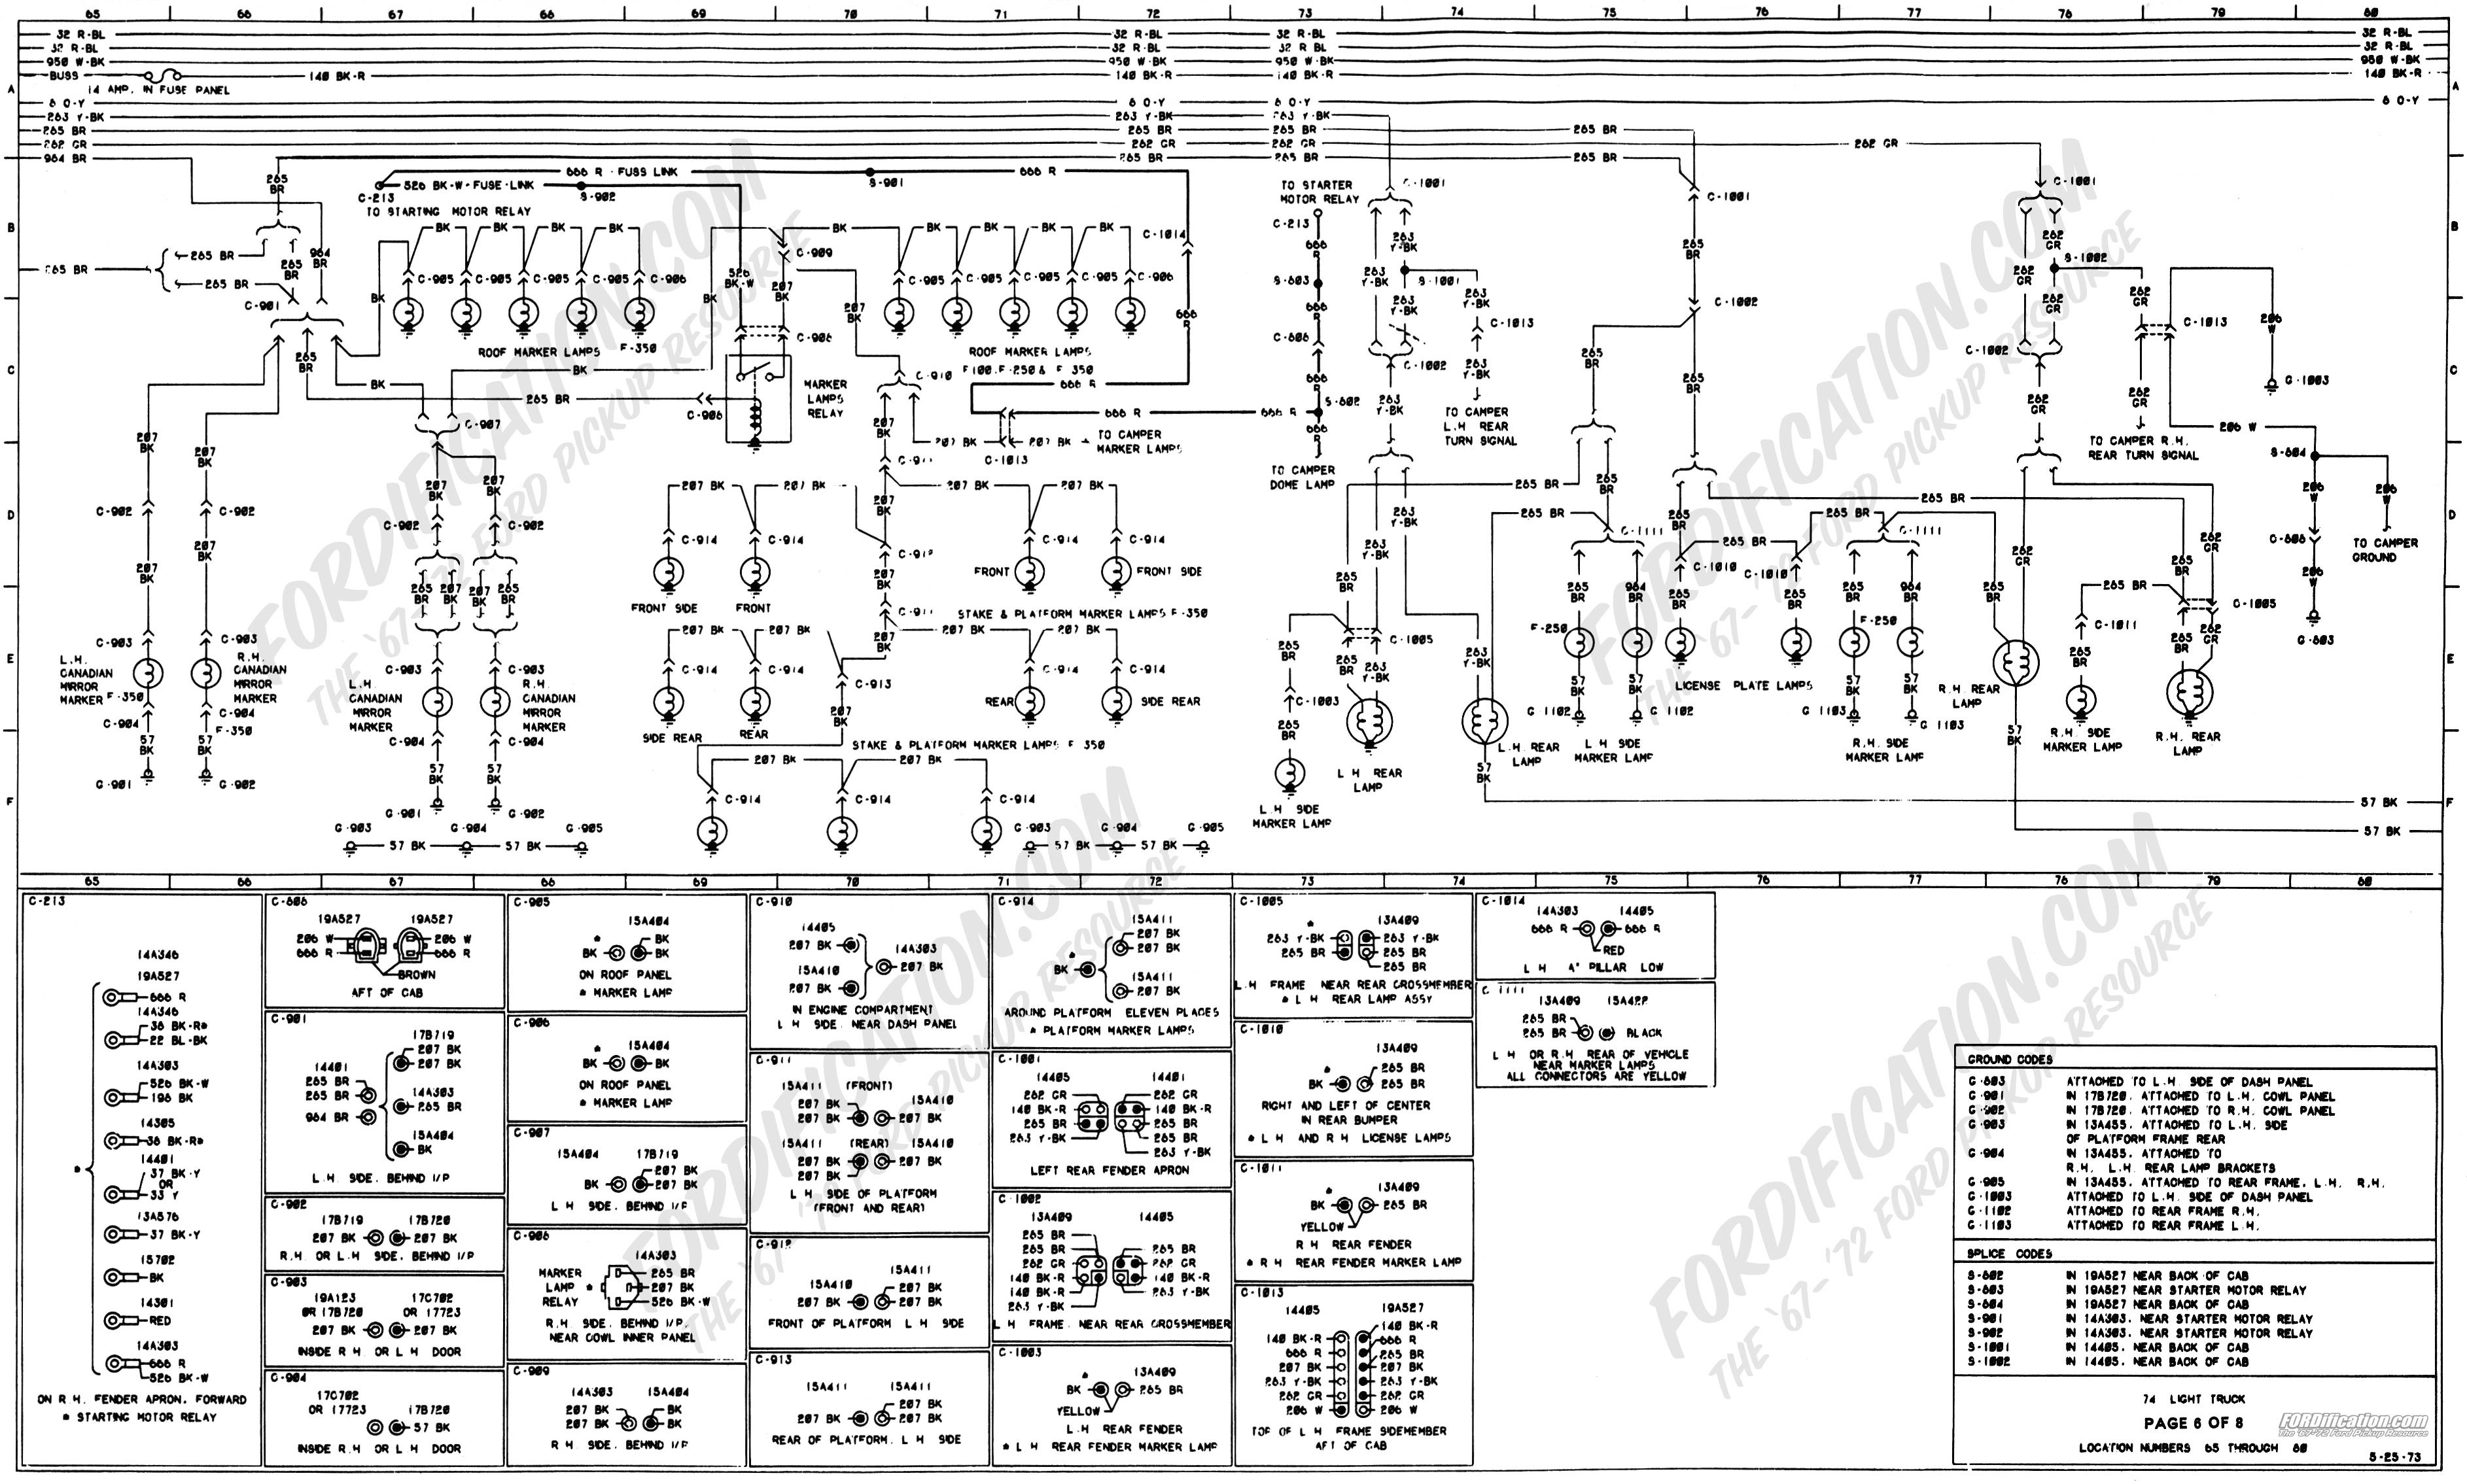 Ford F150 Wiring Harness Diagram 1973 1979 ford Truck Wiring Diagrams & Schematics fordification Of Ford F150 Wiring Harness Diagram